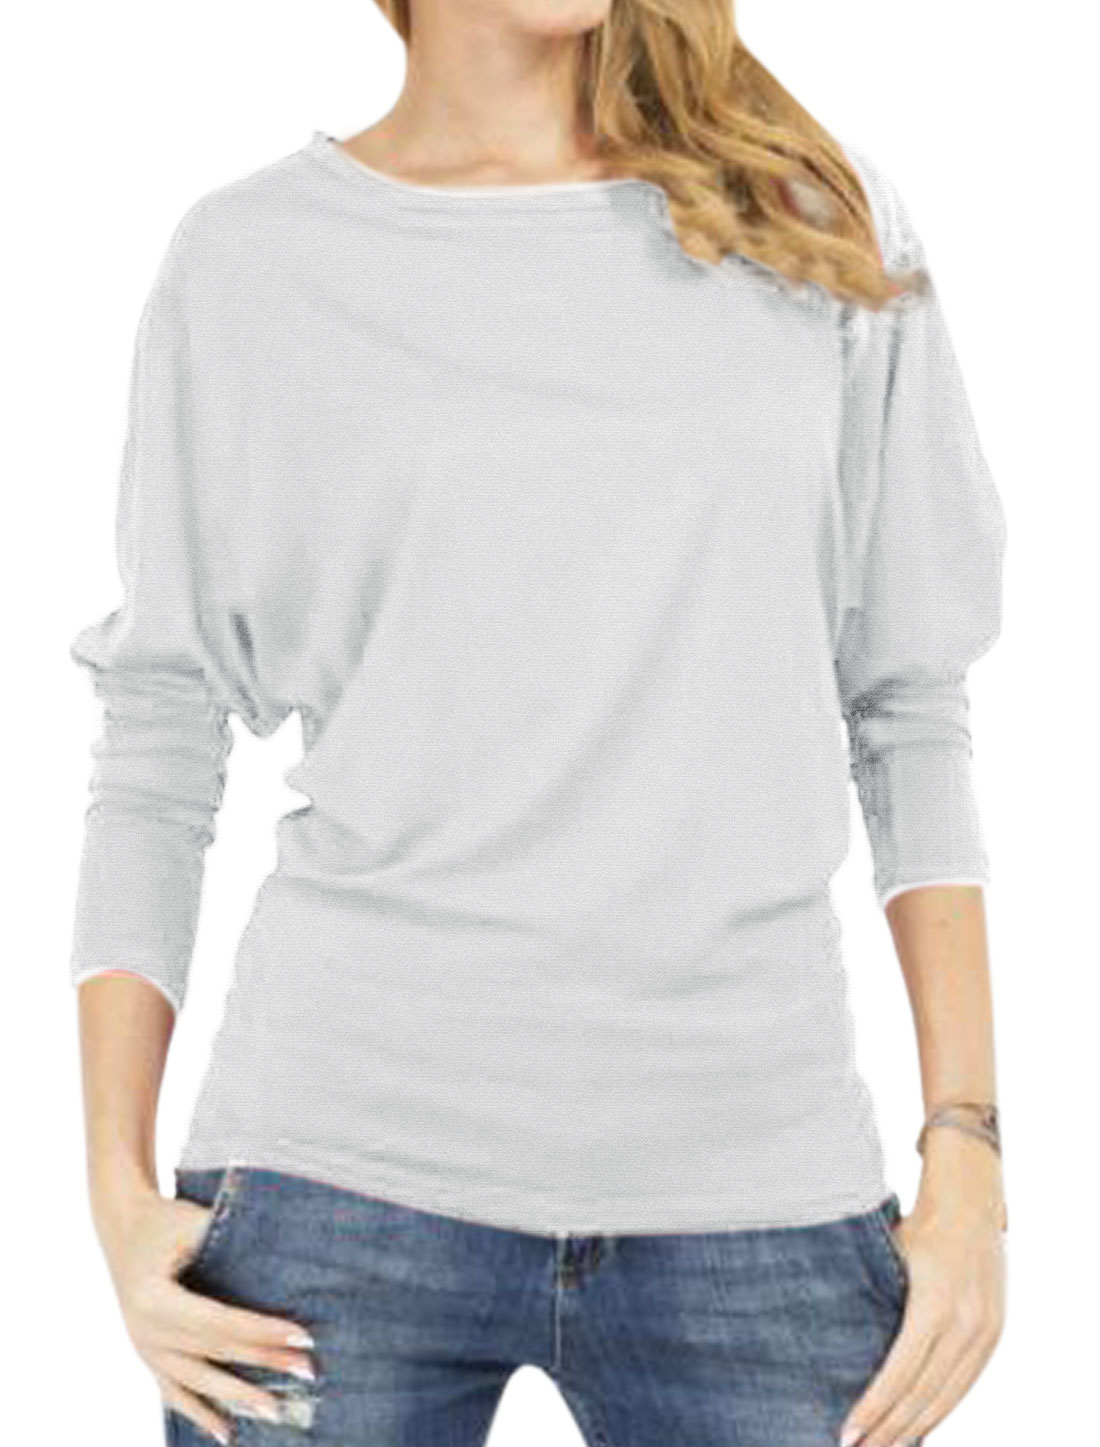 Women Round Neck Long Sleeves Casual Tee Shirt Gray S